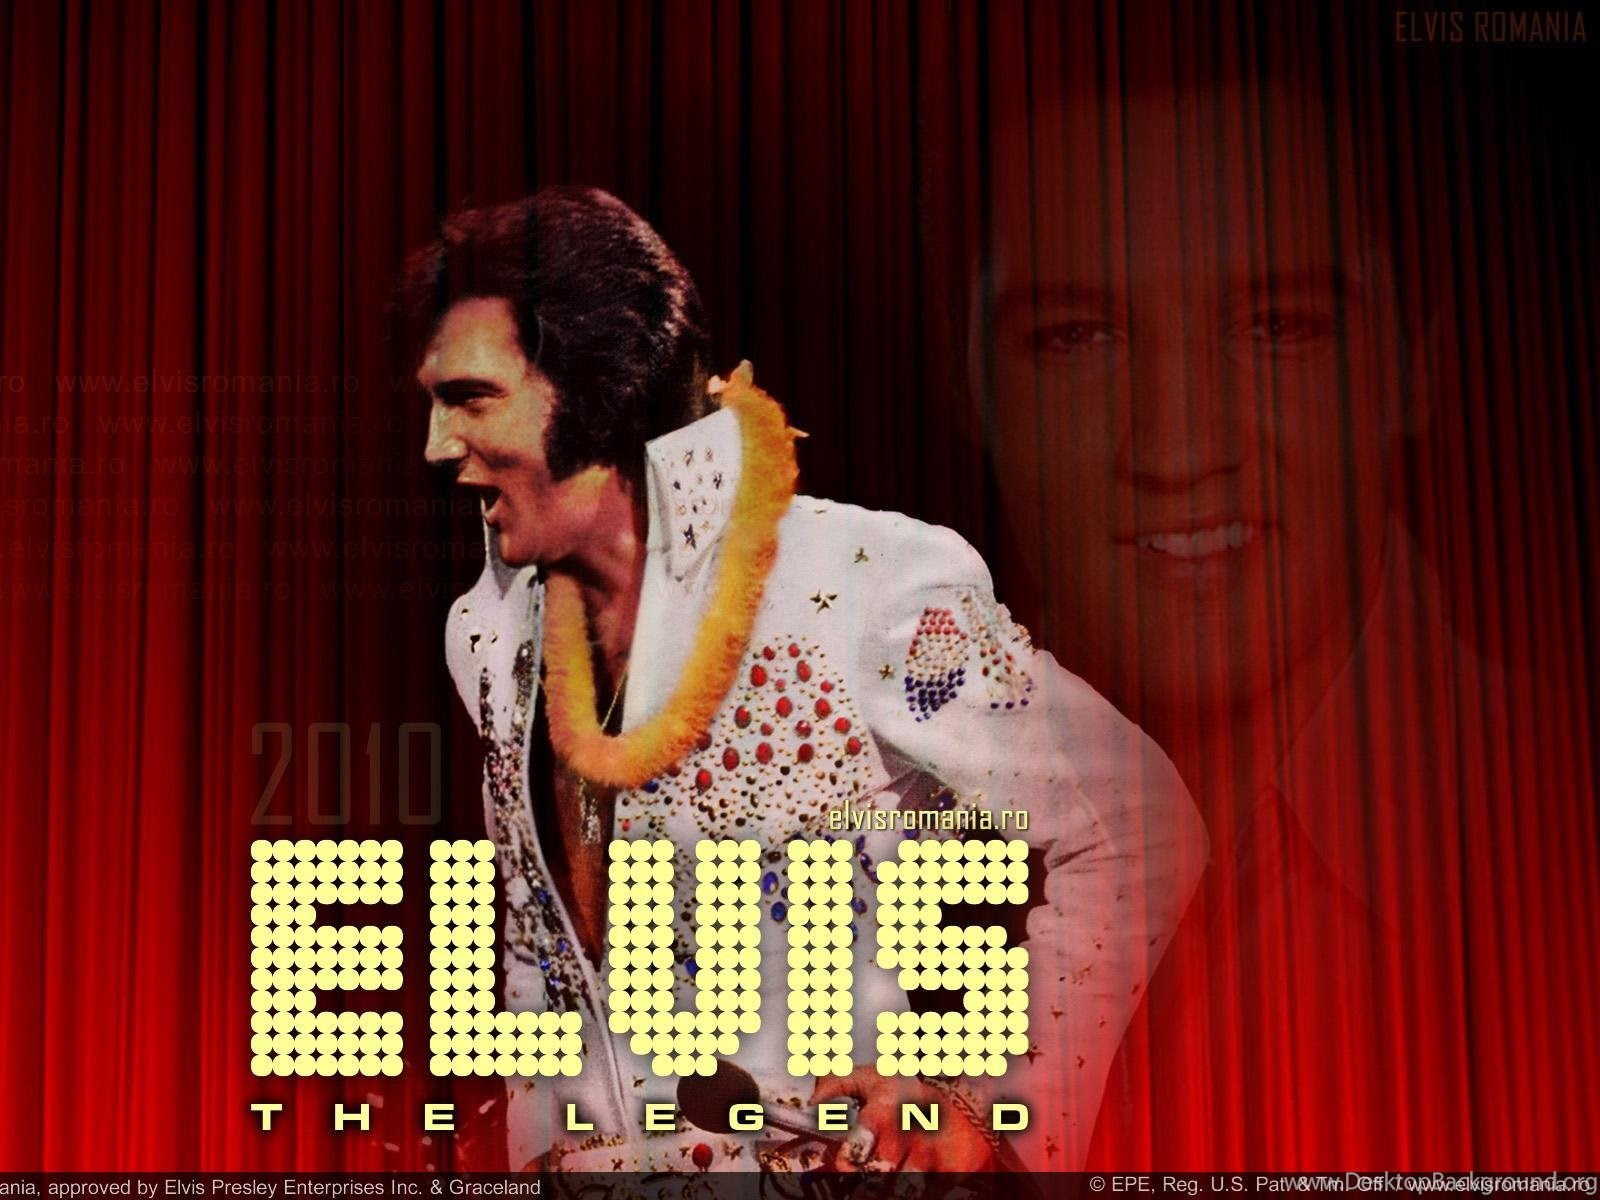 Download Free Elvis Presley Wallpapers Wallpapers Free Download